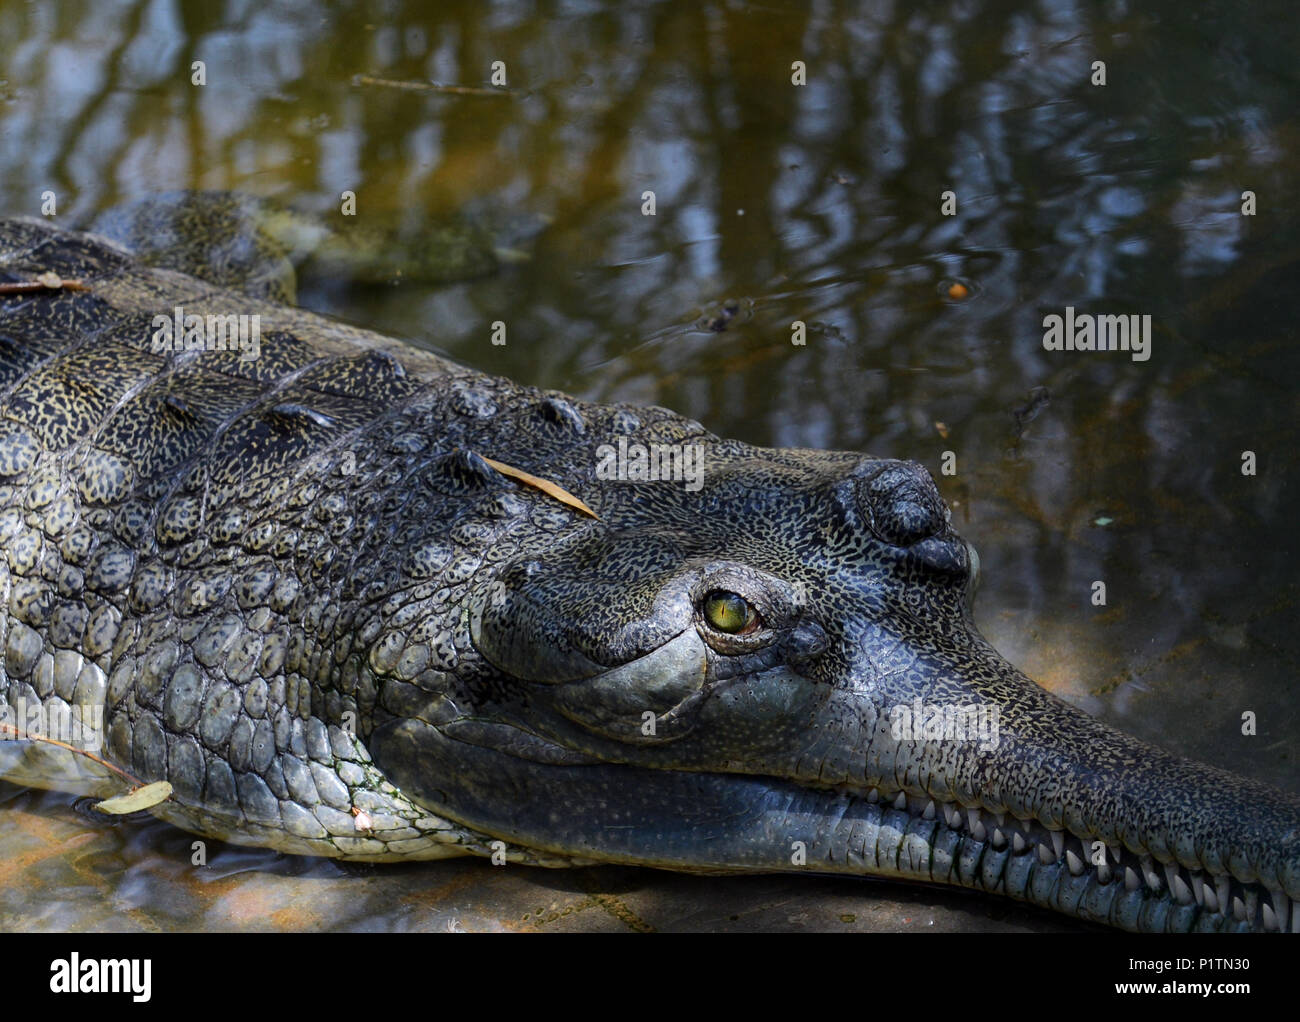 A Close up of a Gharial - Fish-Eating crocodile. - Stock Image